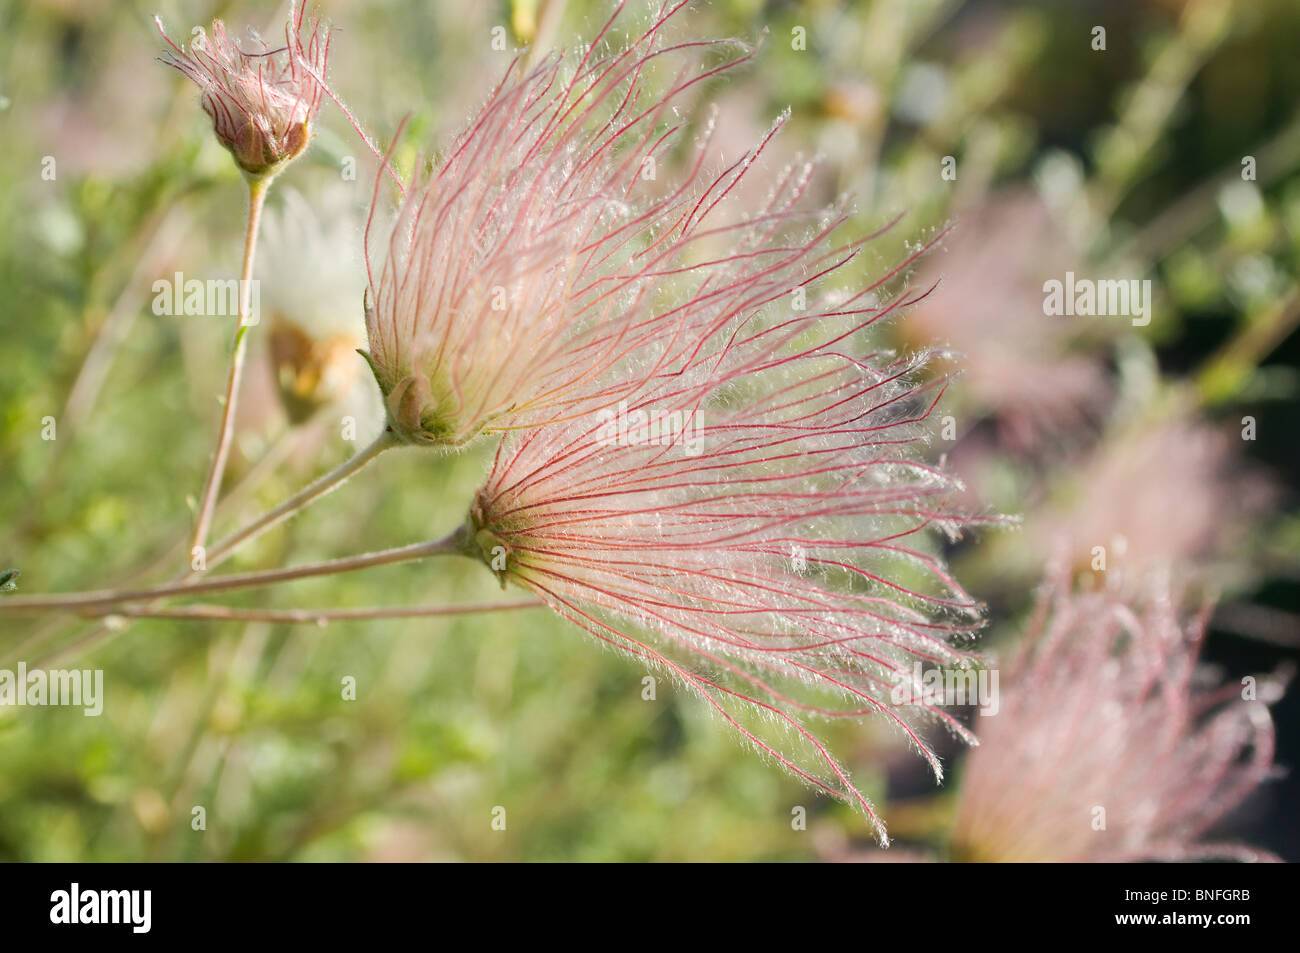 Tufts on Apache Plume in Santa Fe New Mexico - Stock Image